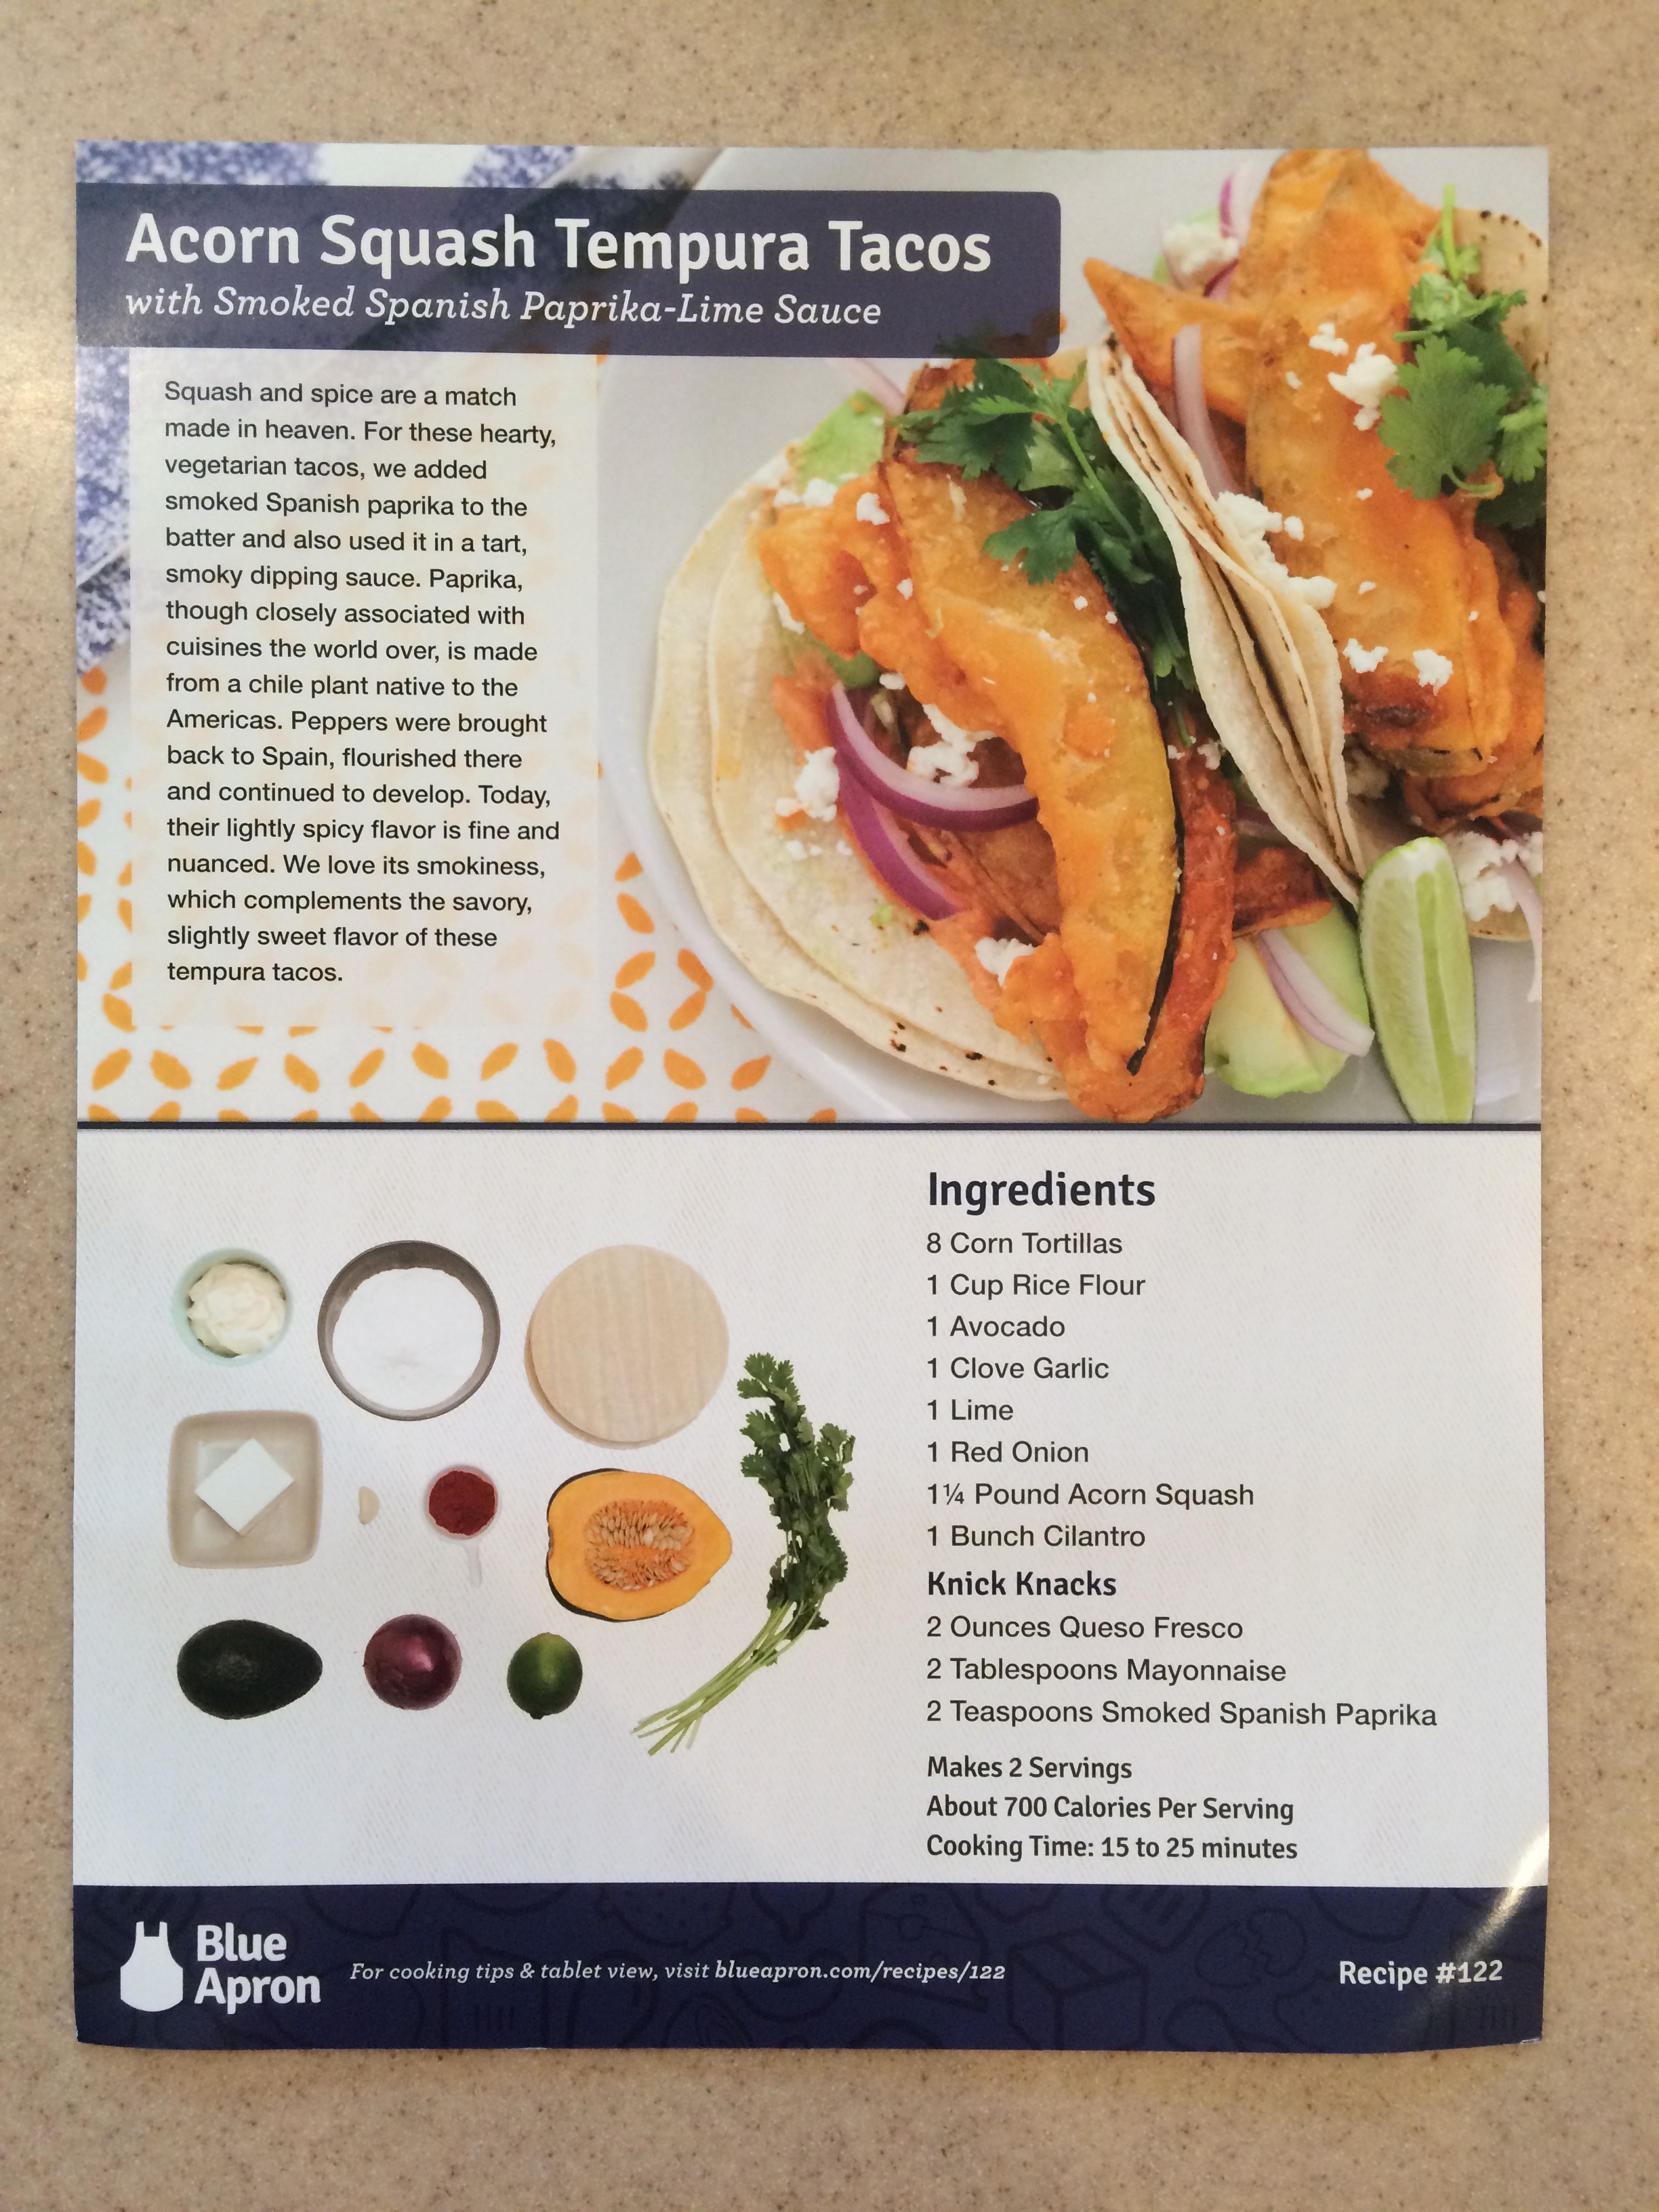 Blue apron tacos - I Was Very Nervous To Prepare This As We Don T Ever Have Meatless Dinners In Our Home But After Trying It I Couldn T Believe How Much Meatiness The